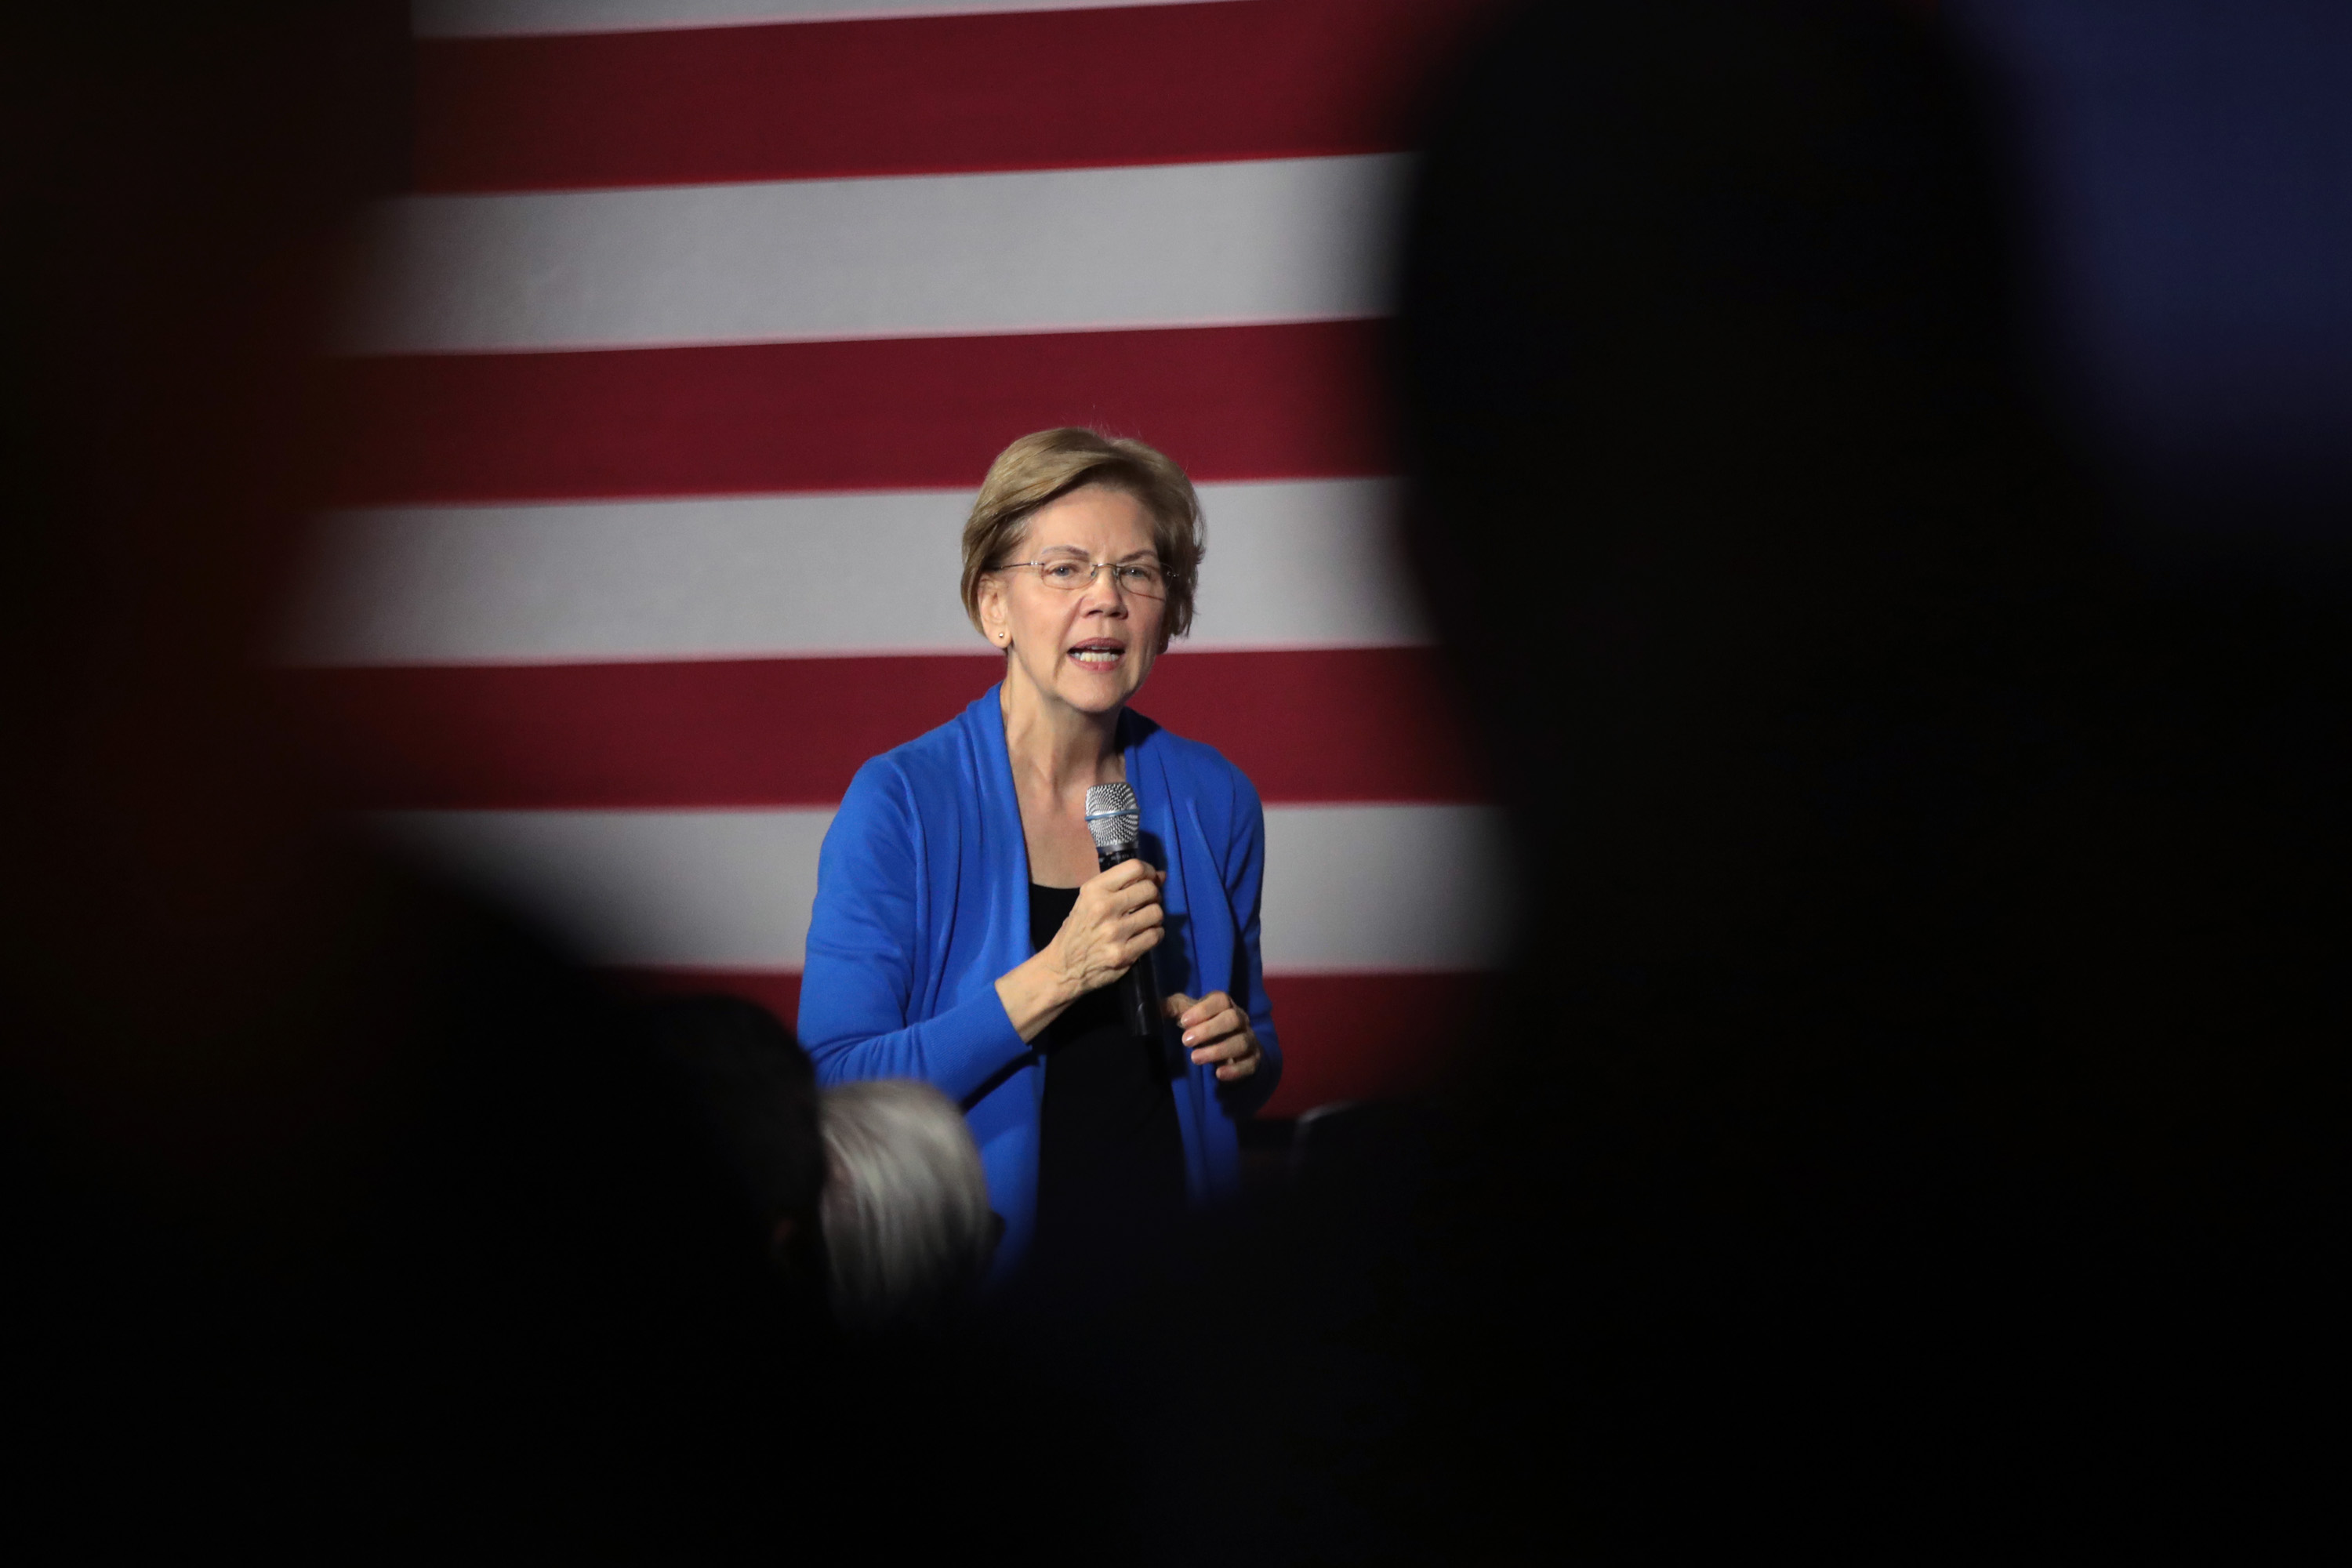 Democratic presidential candidate Sen. Elizabeth Warren speaks to guests during a campaign stop in Cedar Rapids, Iowa on Dec. 21, 2019.